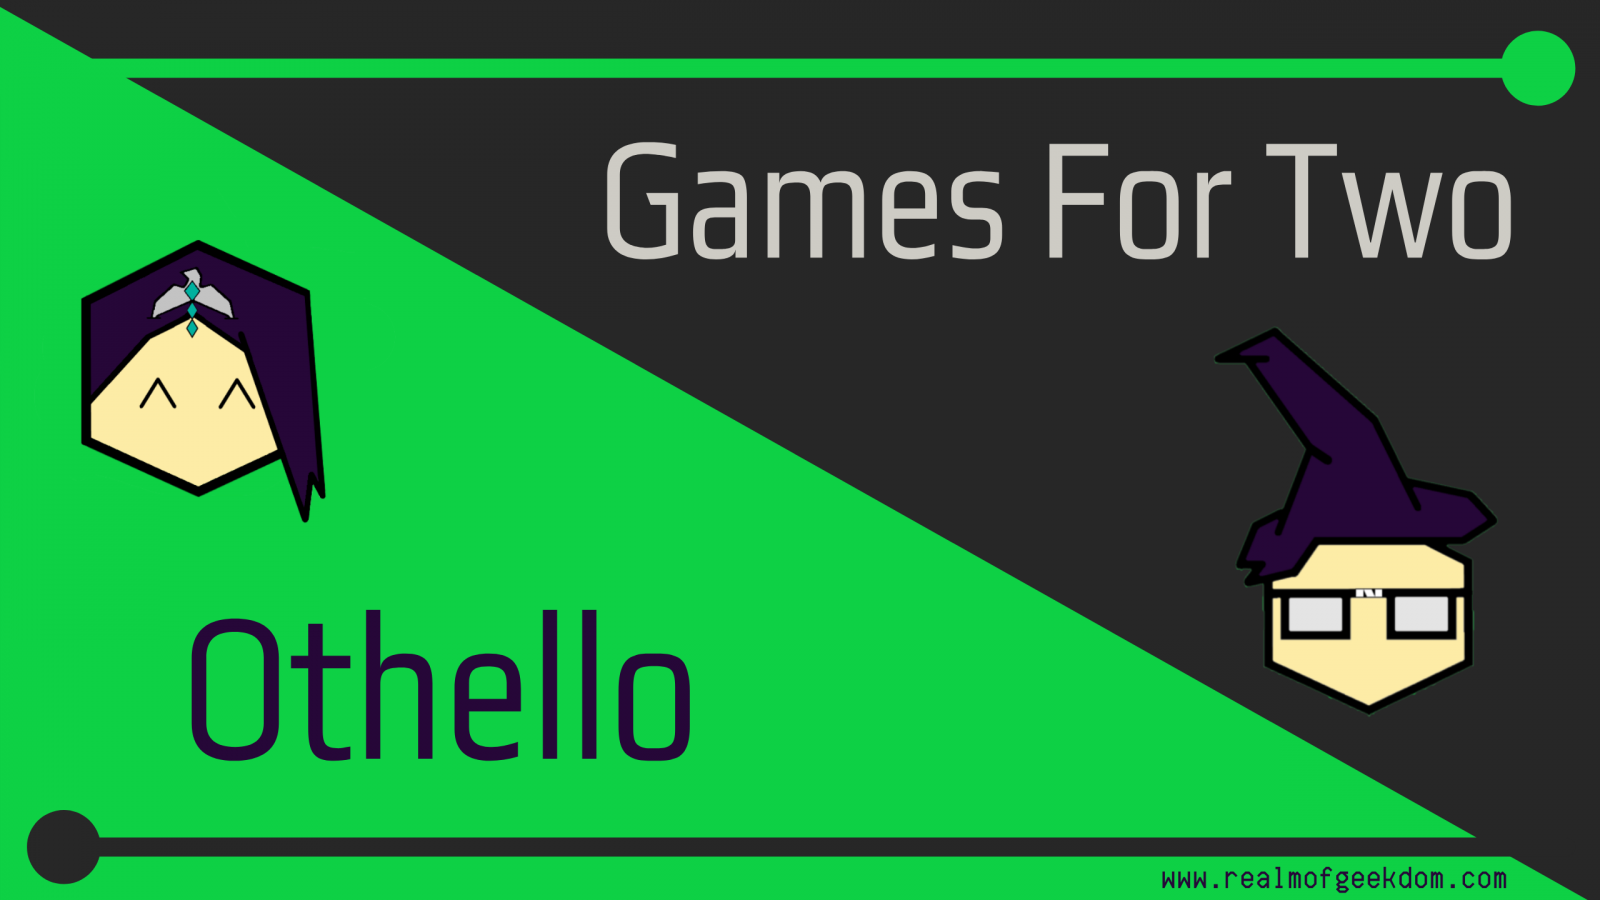 Games for Two Othello Title